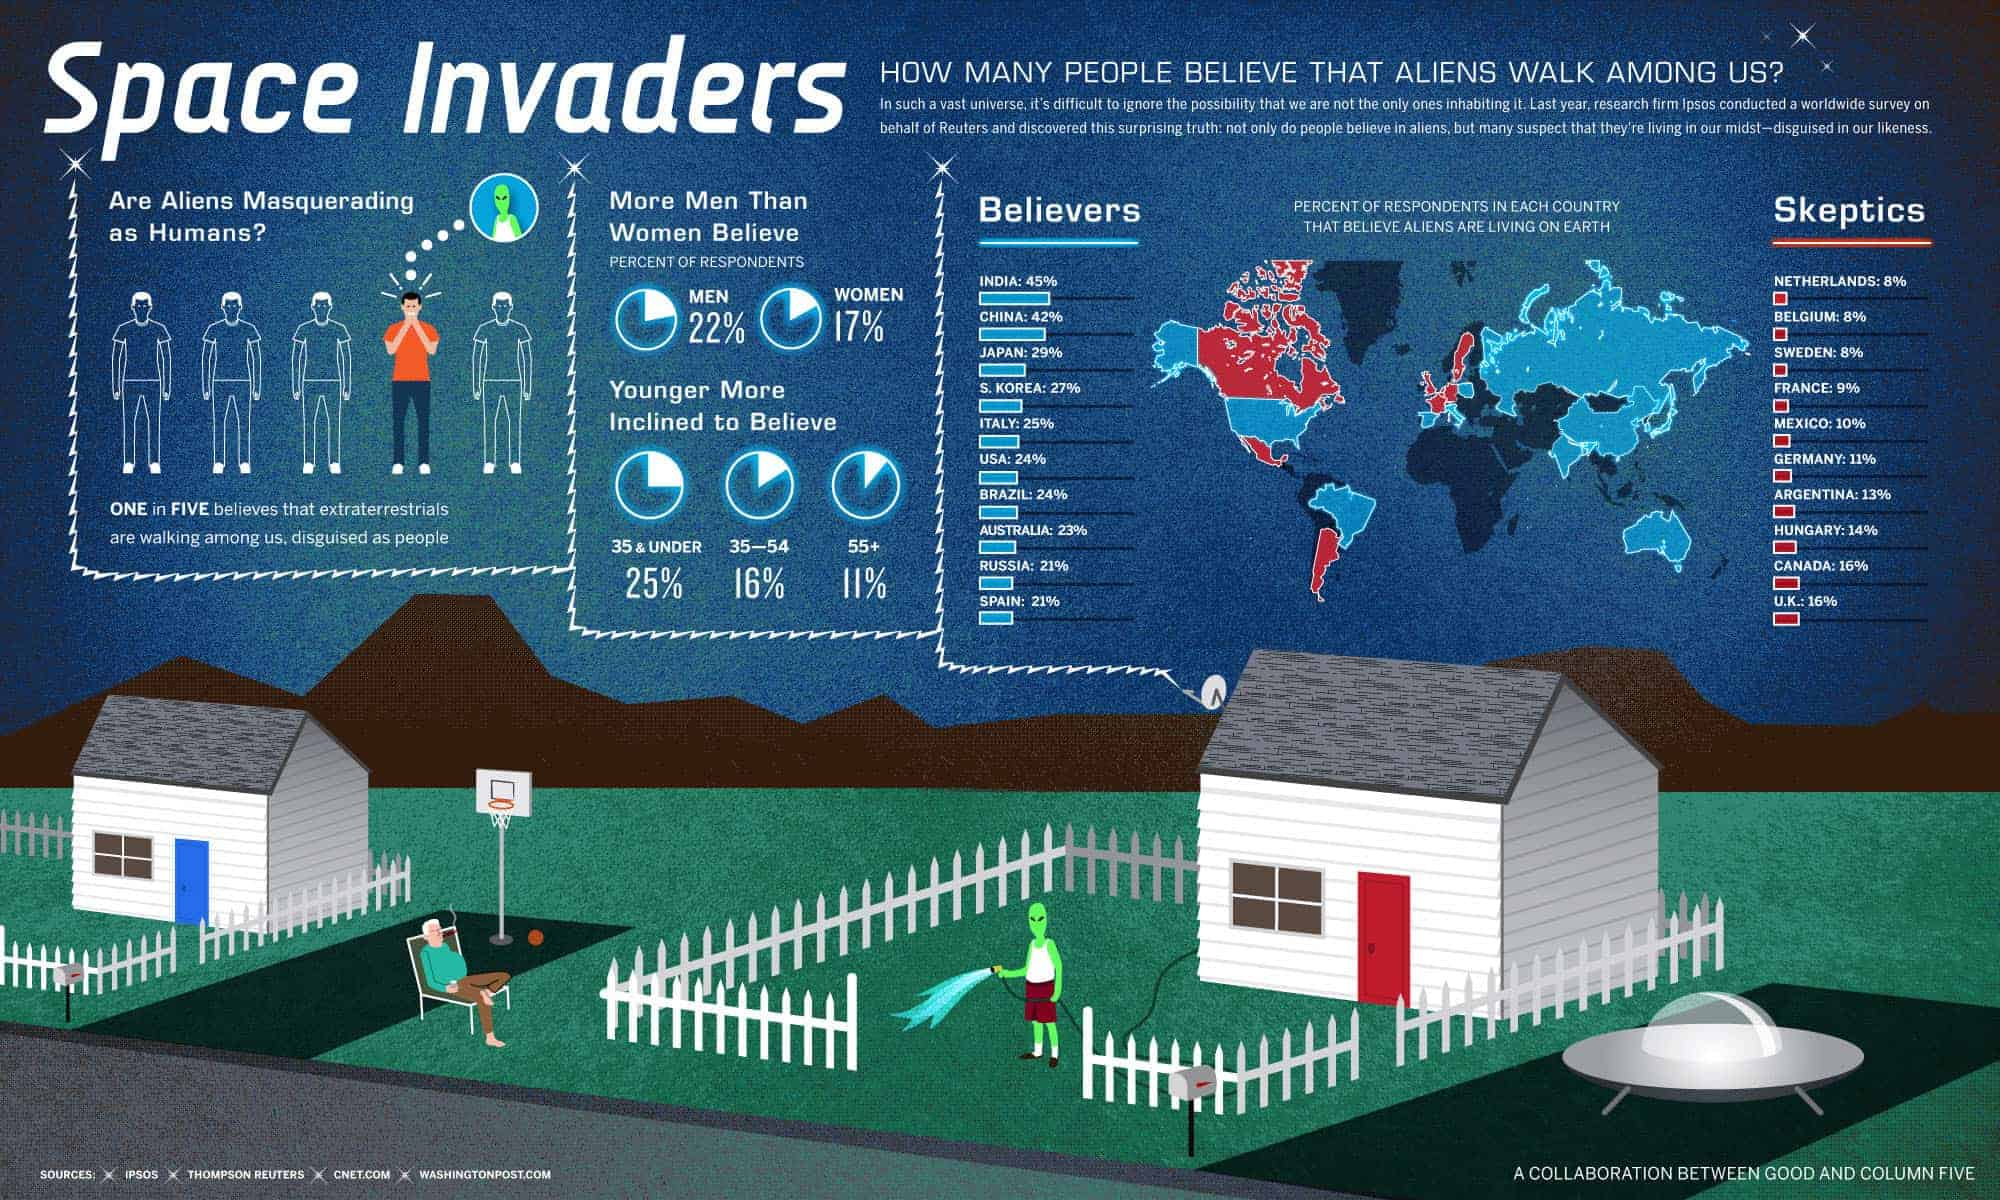 A-GOOD-space-invaders-infographic